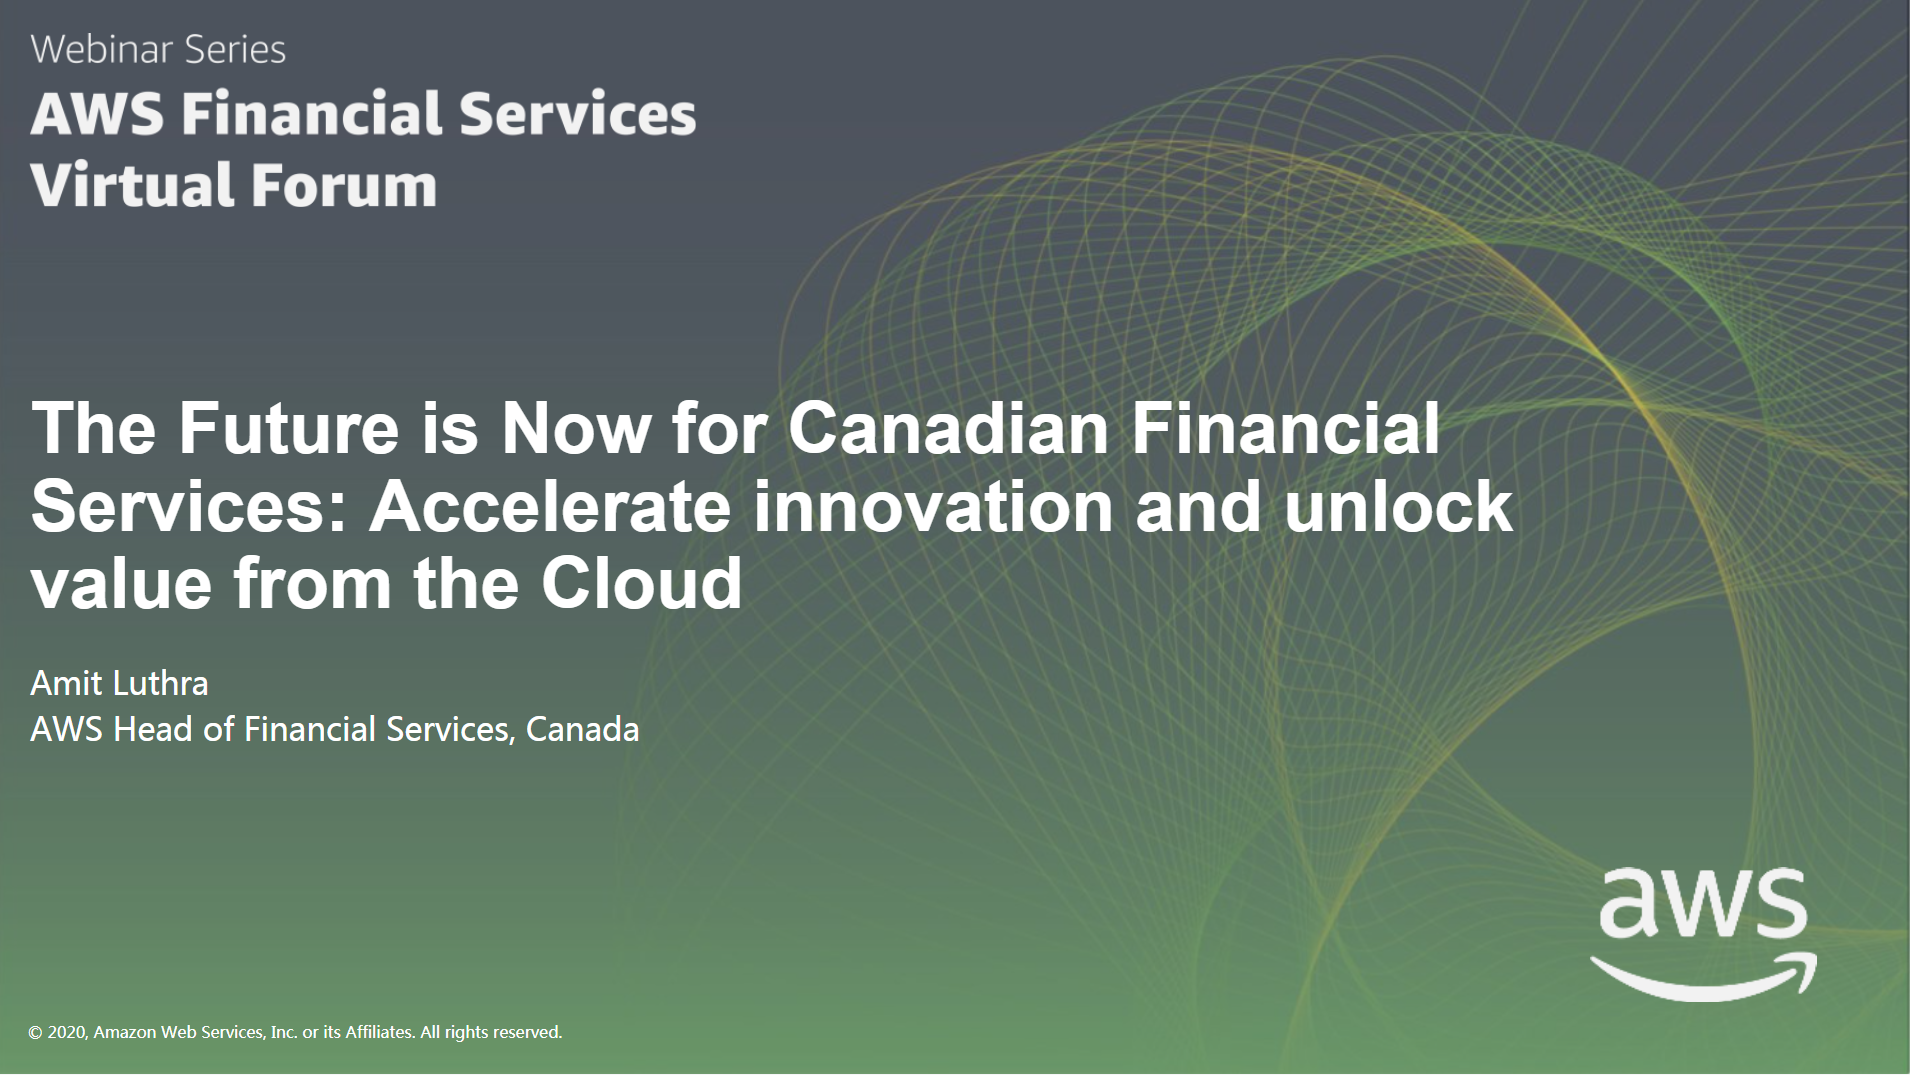 The Future is Now for Canadian Financial Services V2